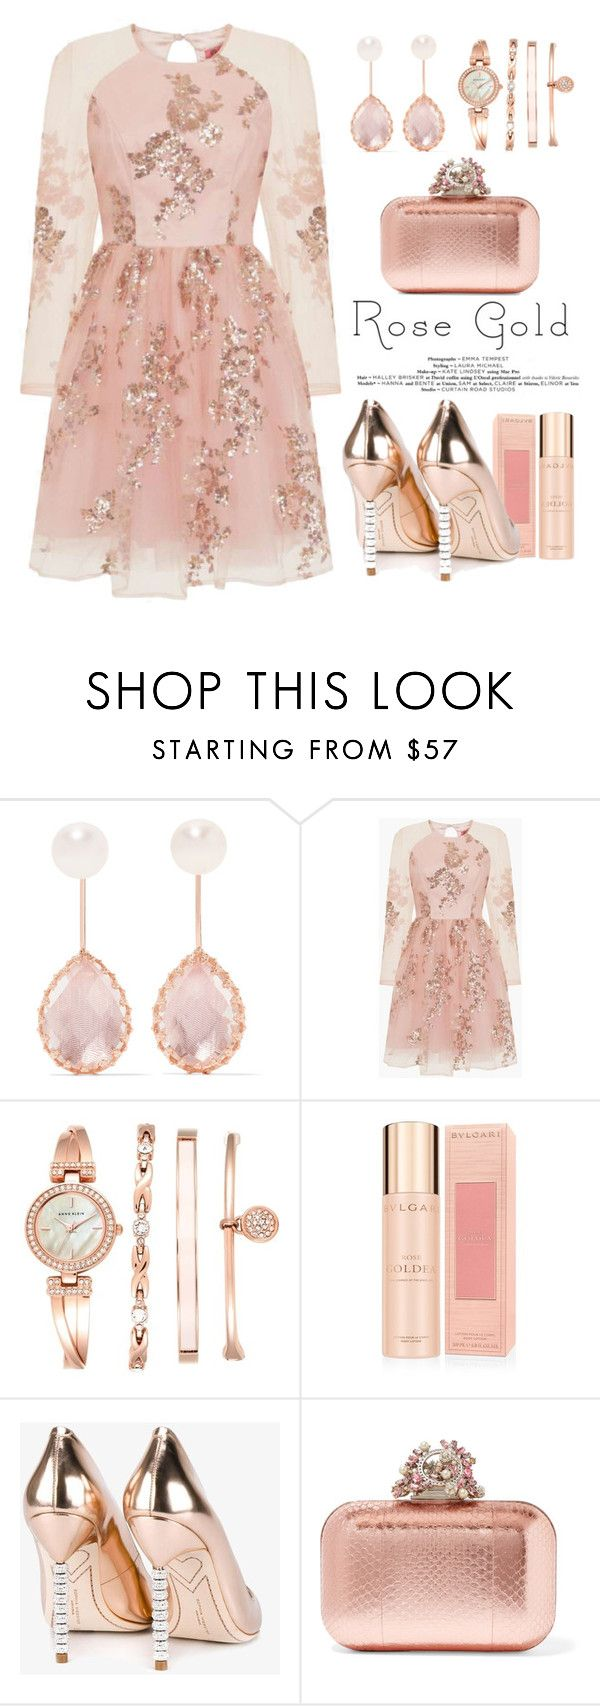 """""""Rose Gold"""" by conch-lady ❤ liked on Polyvore featuring Larkspur & Hawk, Chi Chi, Anne Klein, Bulgari, Sophia Webster, Jimmy Choo and rosegold"""